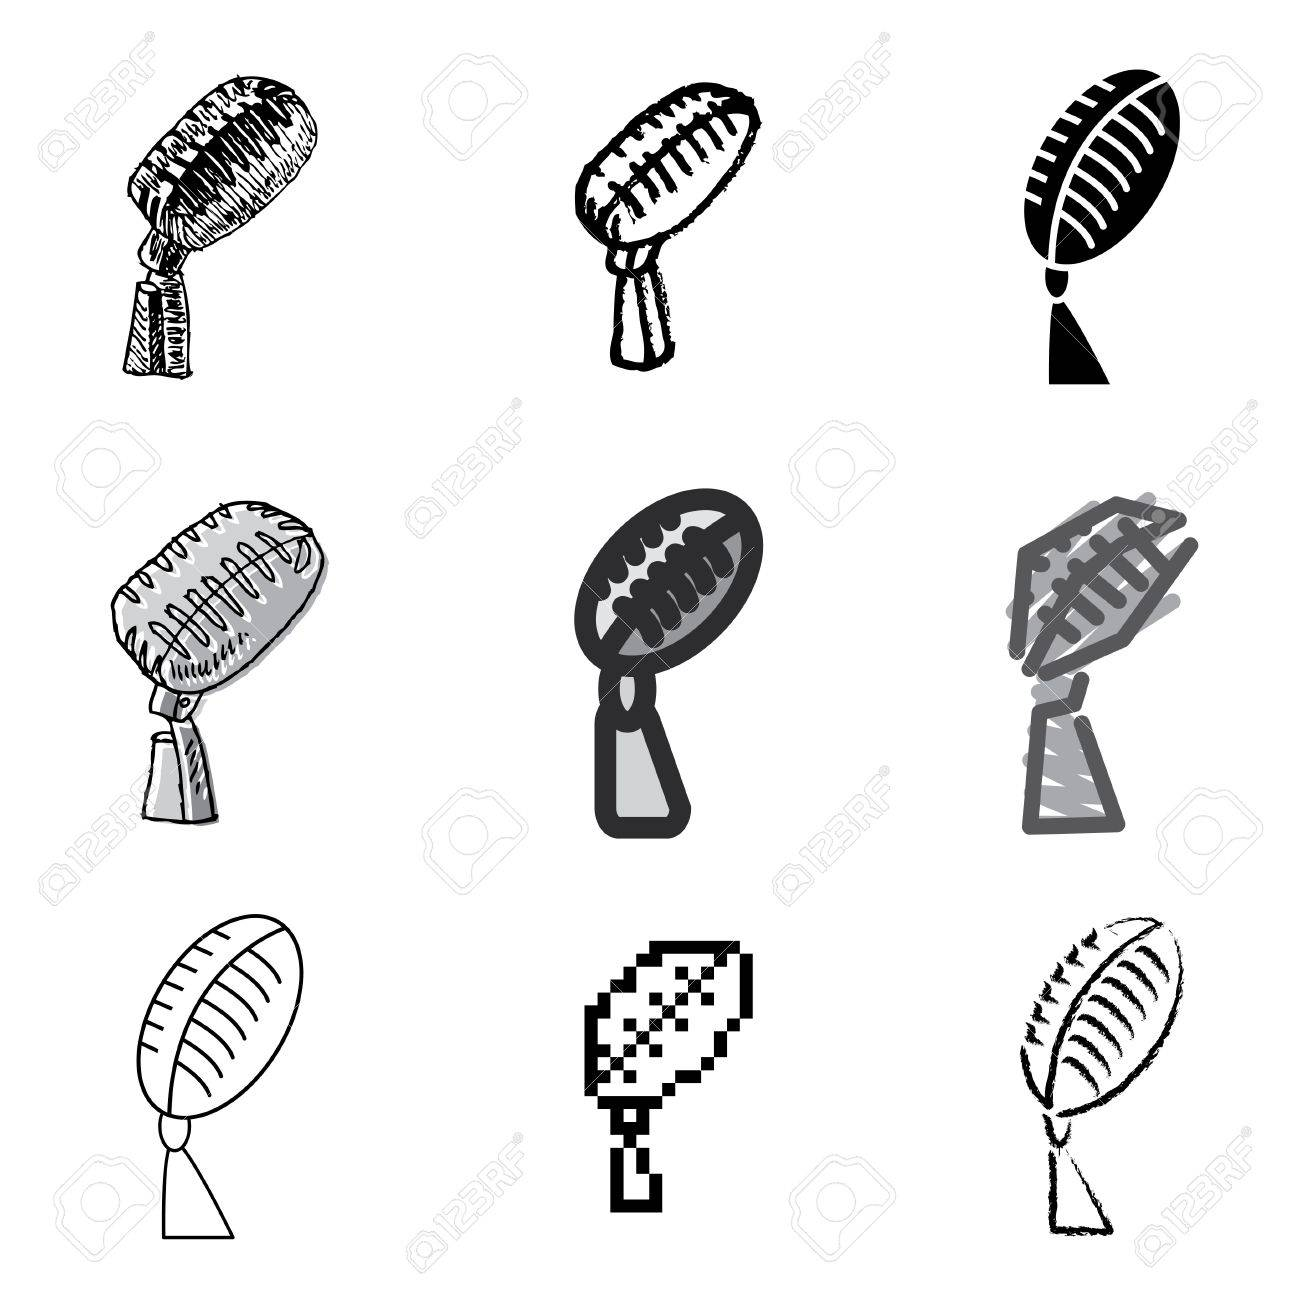 microphone icons vector set Stock Vector - 12834756